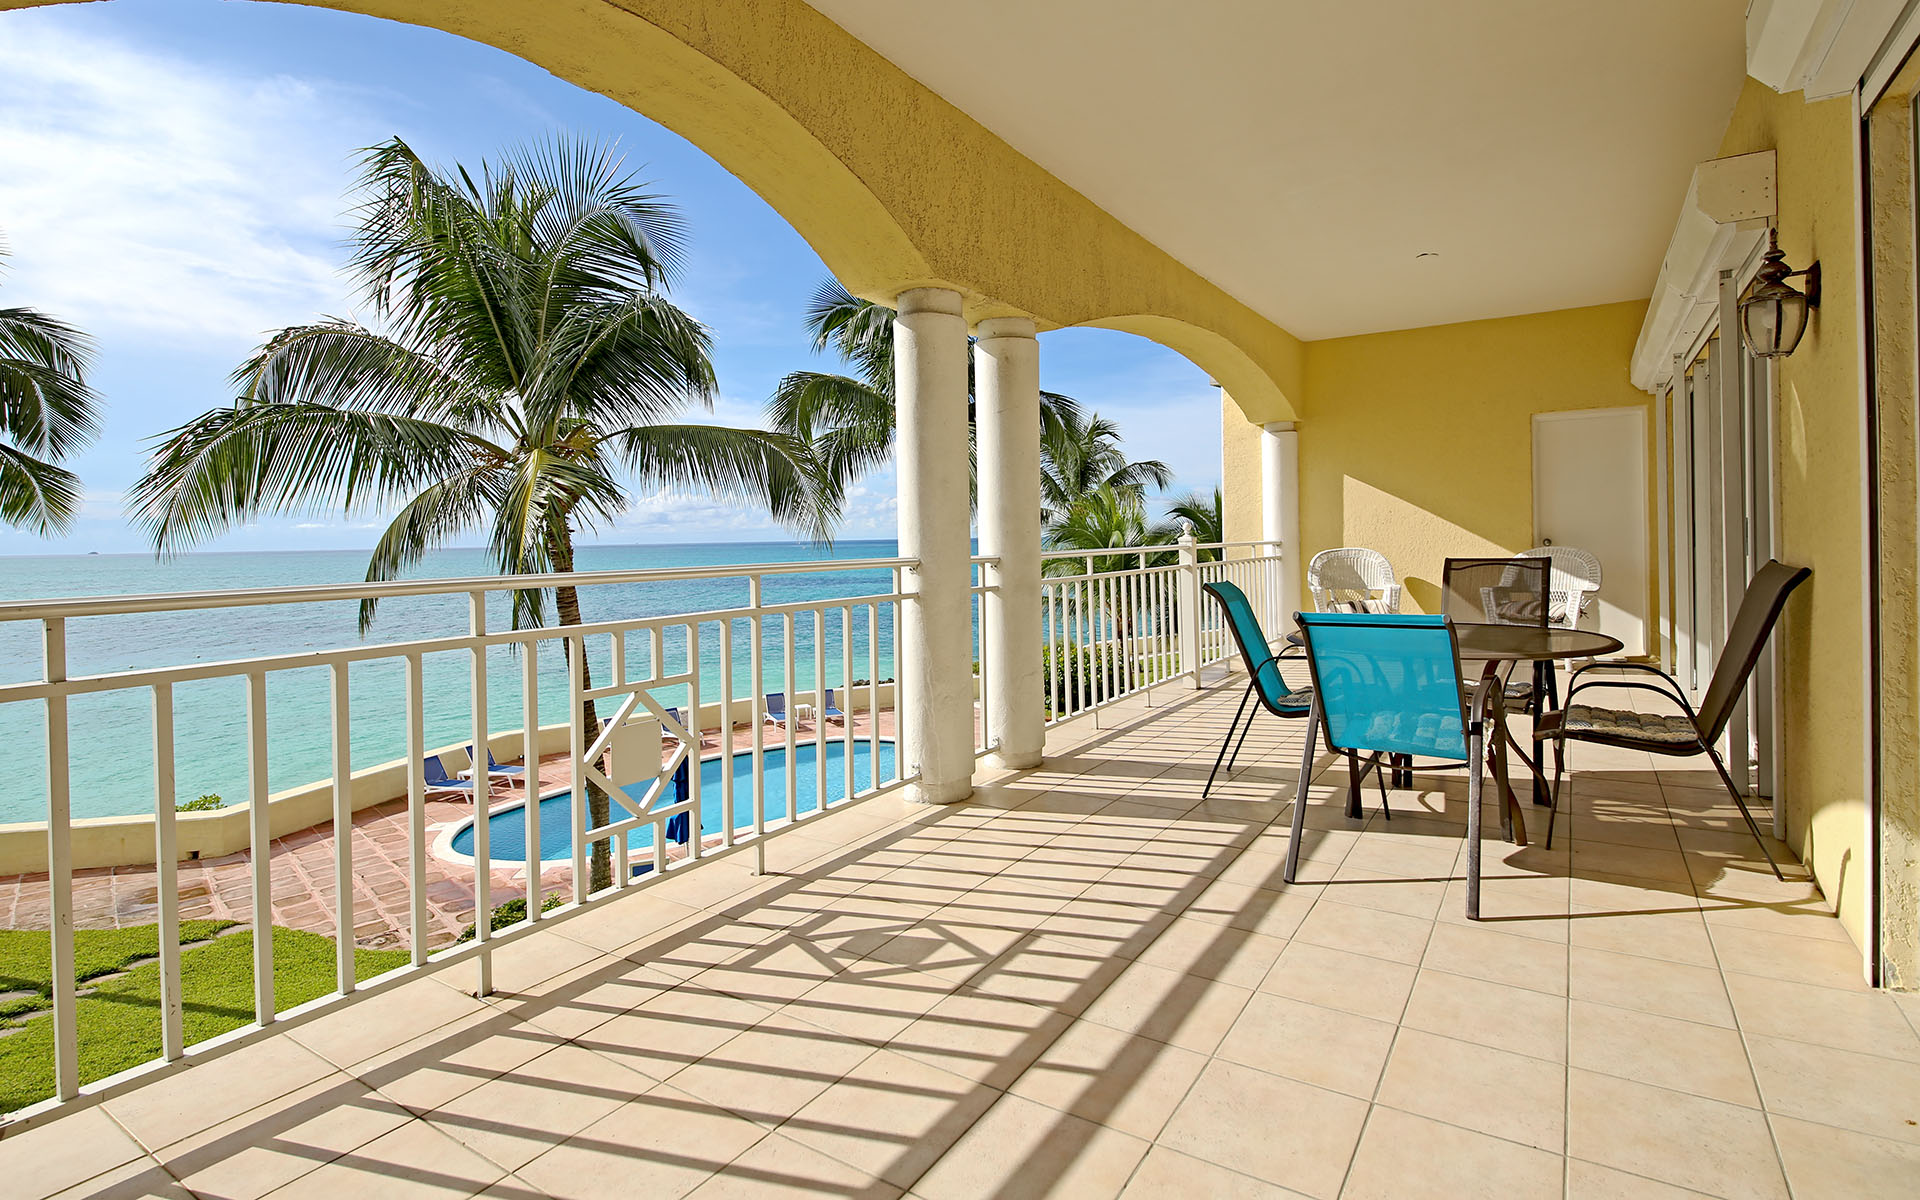 Additional photo for property listing at Exquisite Condo in Gated Community Bahamas